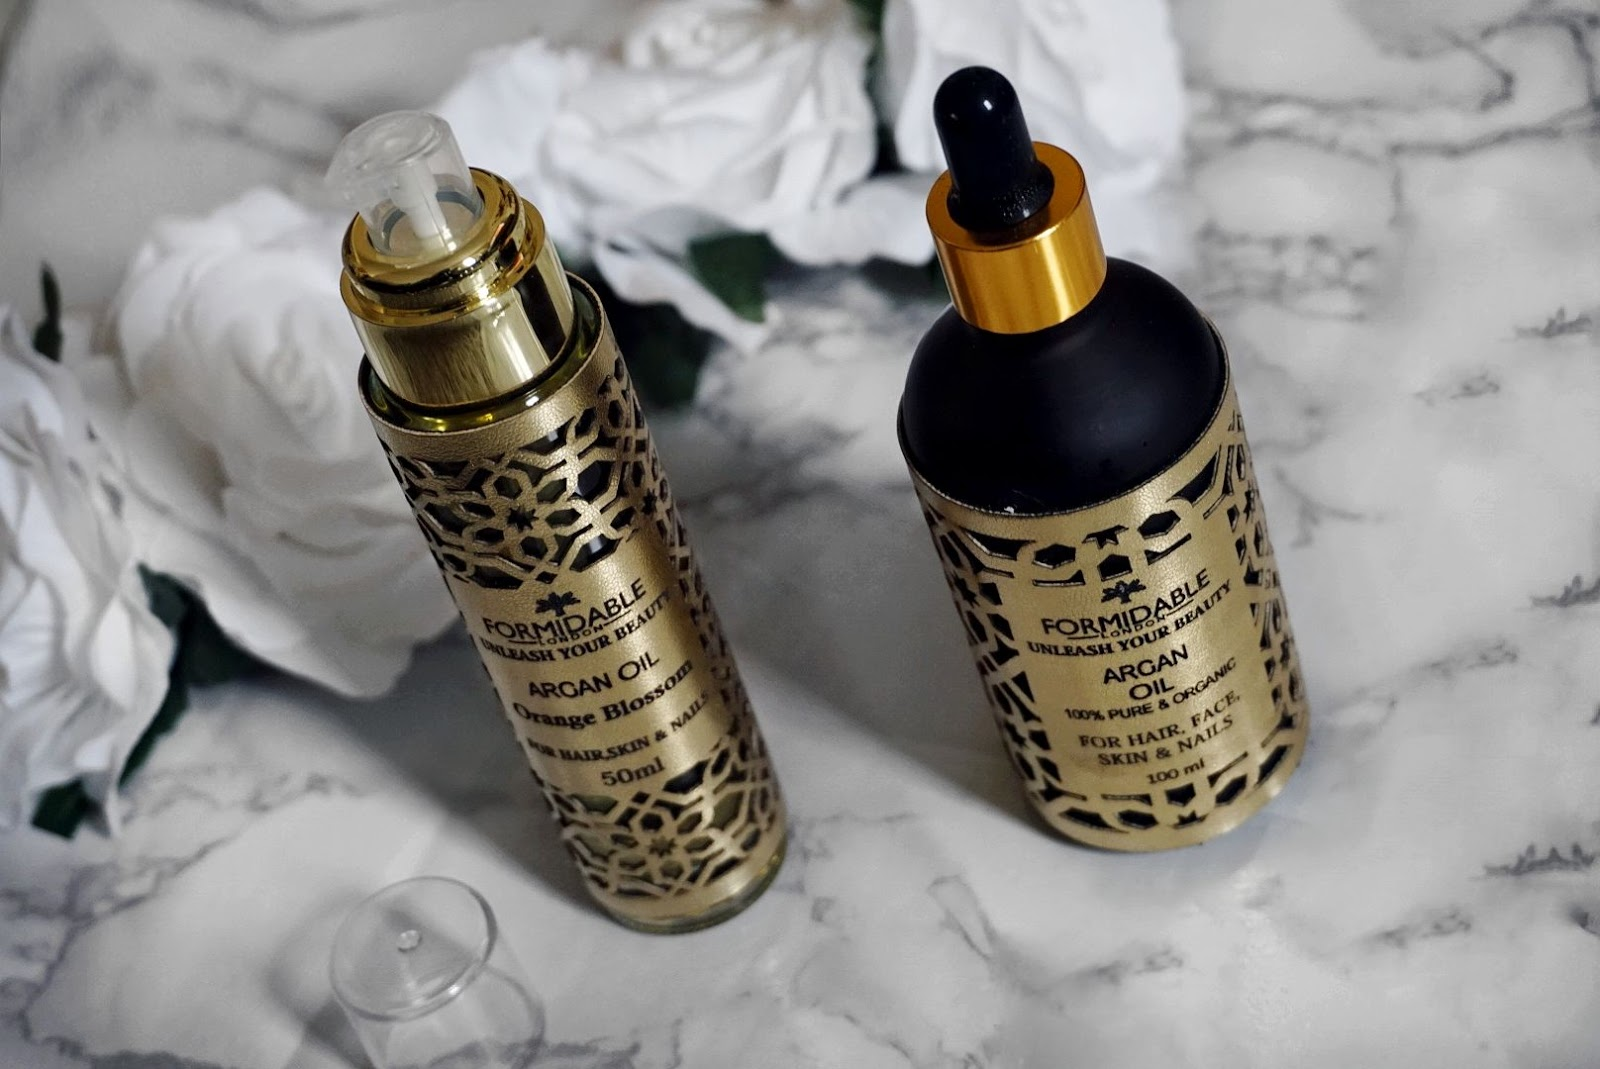 THE MOROCCAN SECRET GOLD OIL FOR HAIR AND SKIN BY FORMIDABLE LONDON